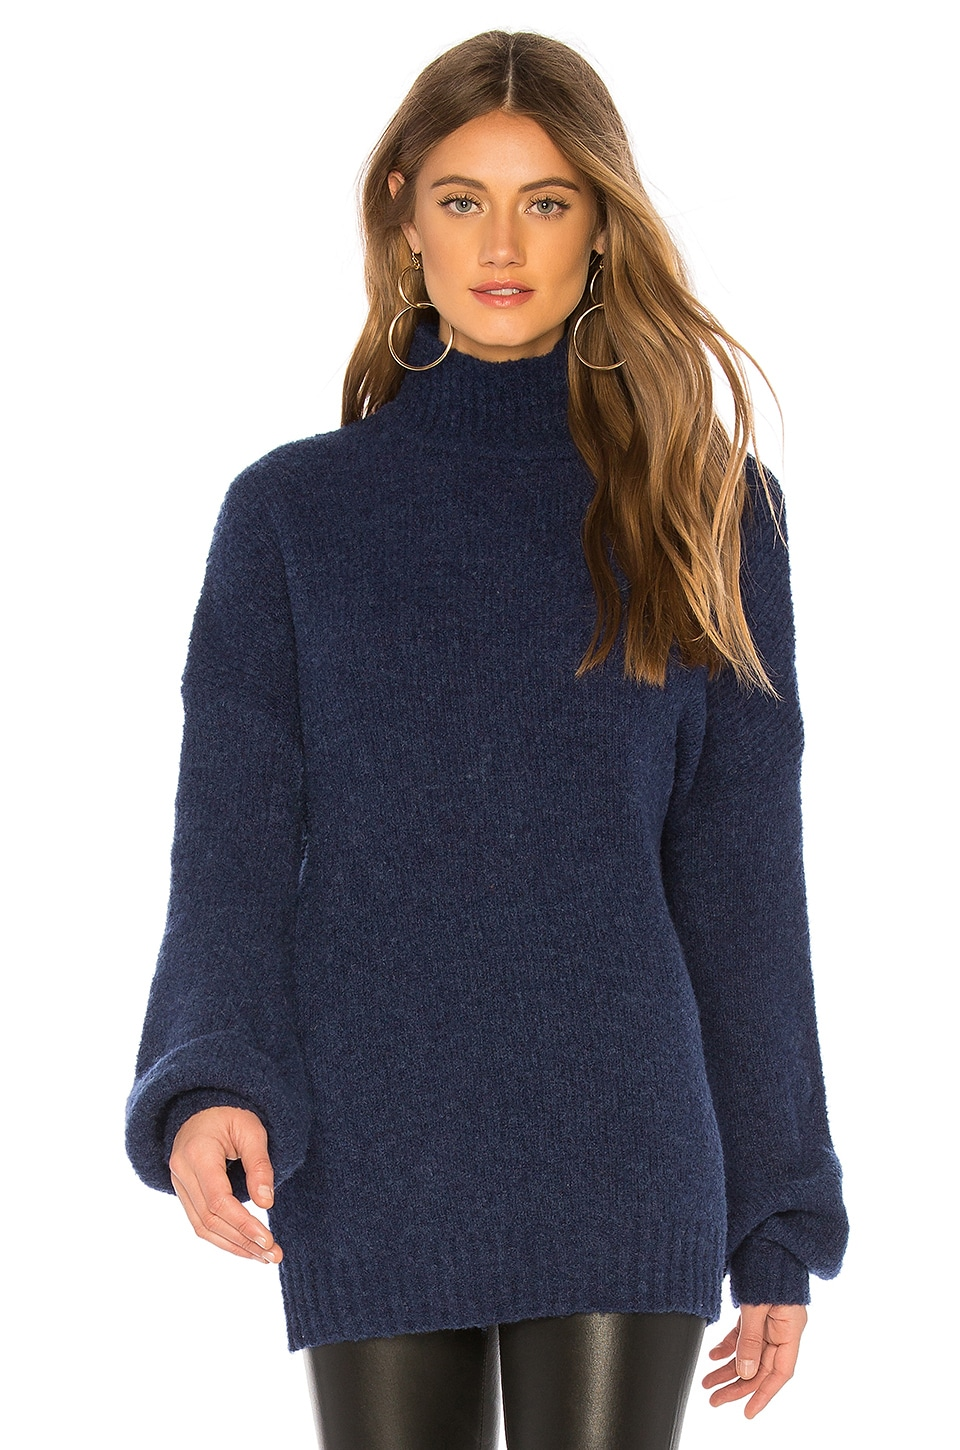 Lovers + Friends Independent Sweater in Navy